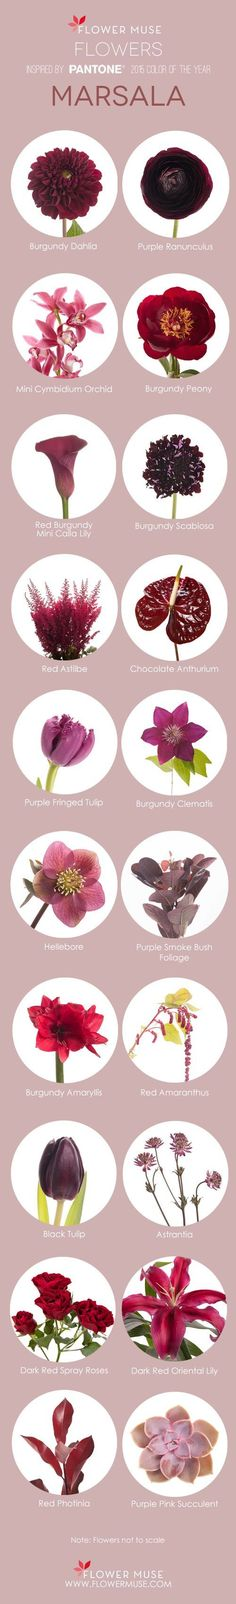 Flower guide - marsala